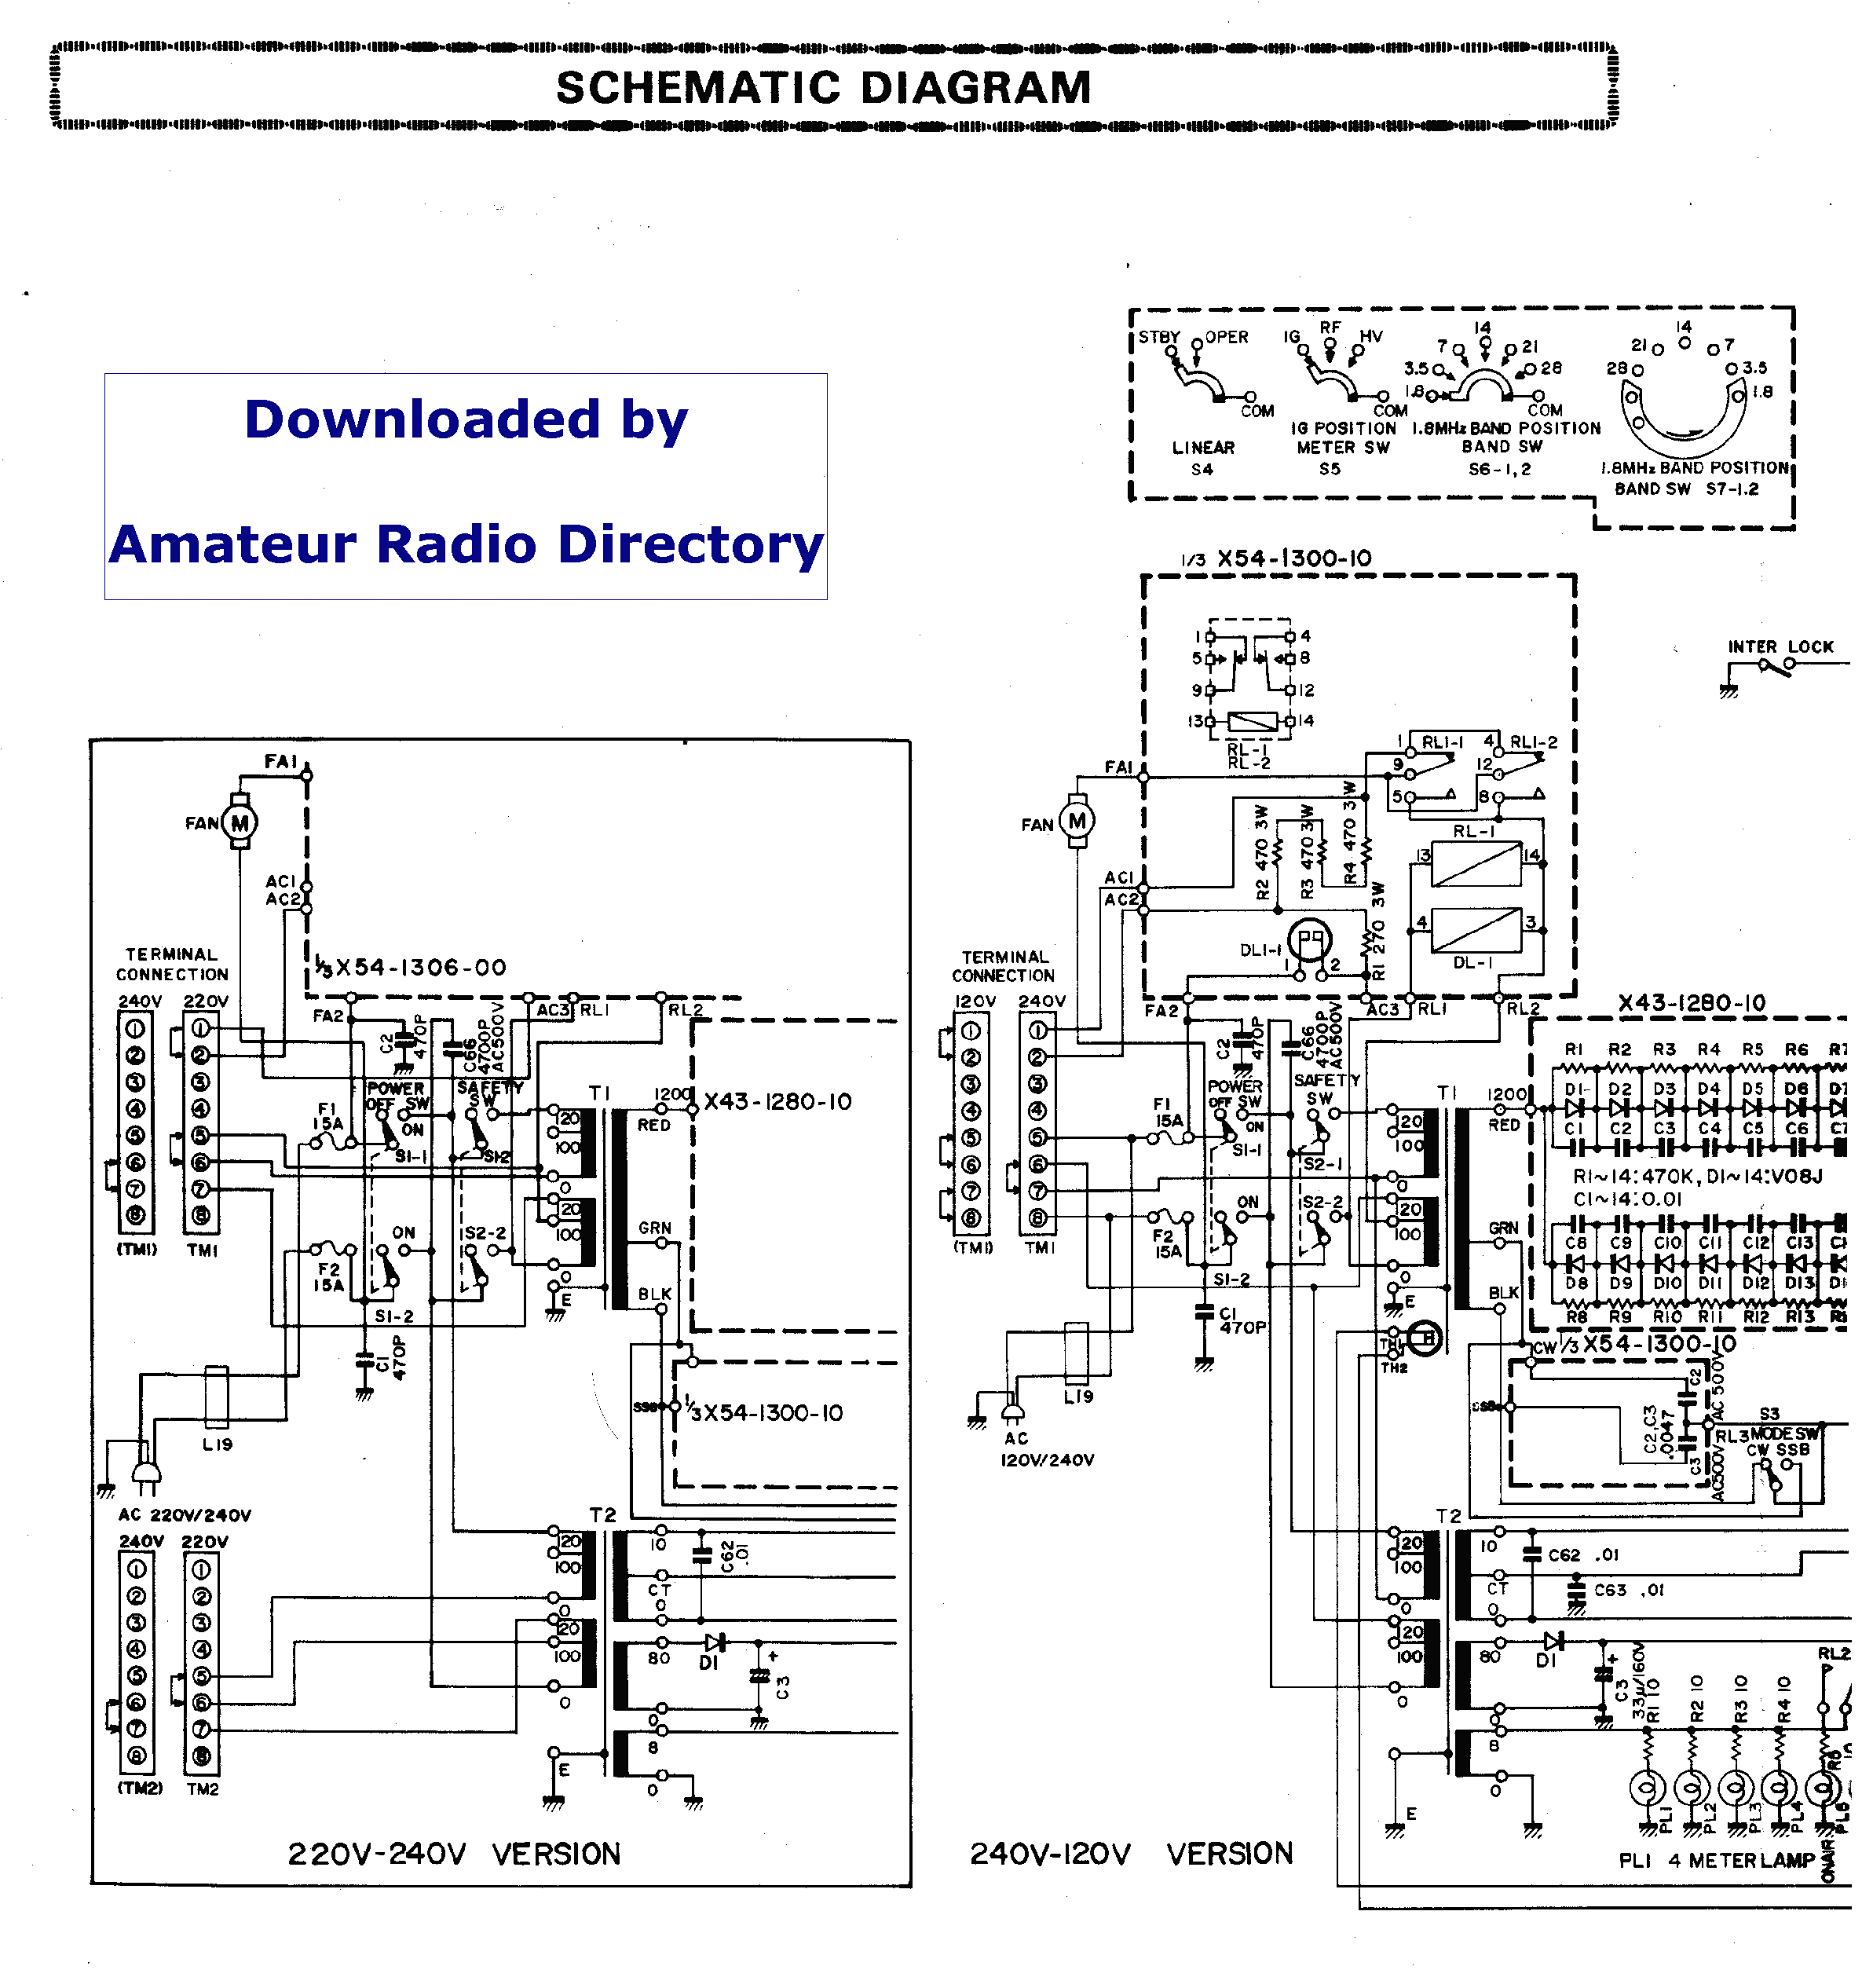 DIAGRAM] Kenwood Kdc 108 Wiring Diagram FULL Version HD Quality Wiring  Diagram - DIAGRAMTHEPLAN.SAINTMIHIEL-TOURISME.FRSaintmihiel-tourisme.fr